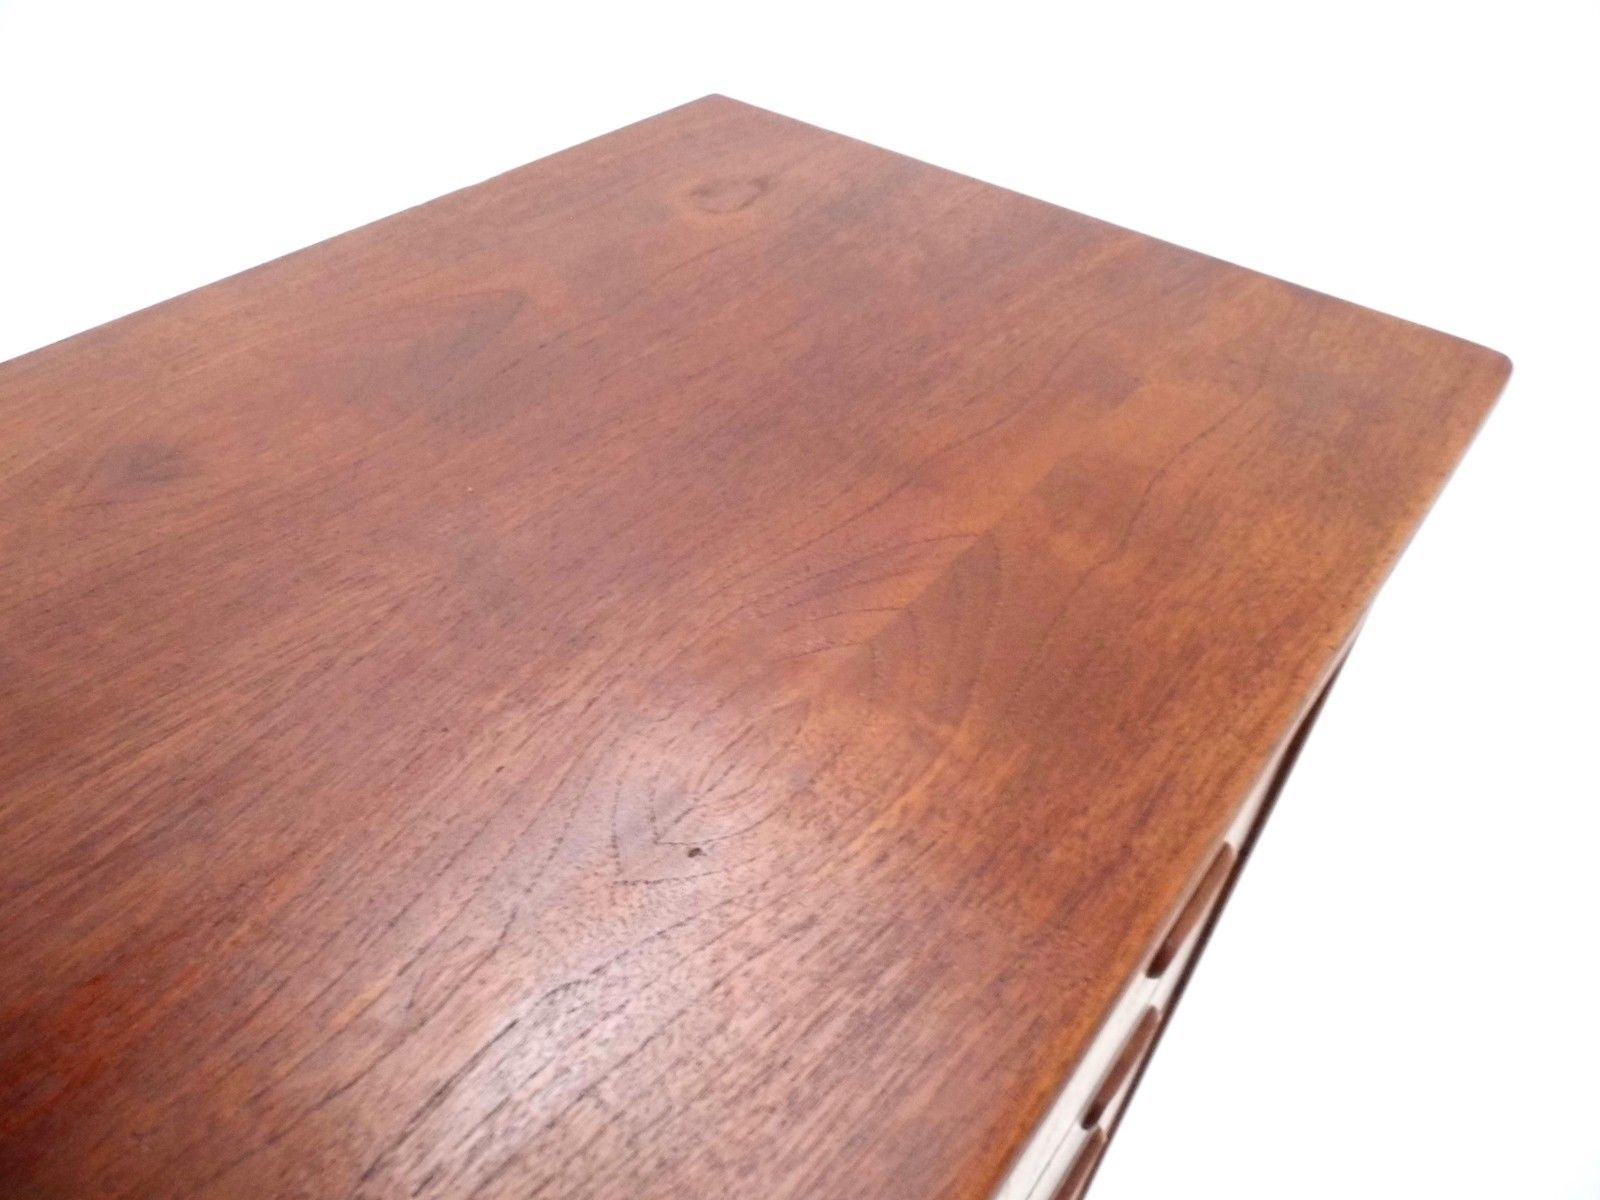 Danish Teak Tallboy with Recessed Handles 1960s for sale at Pamono